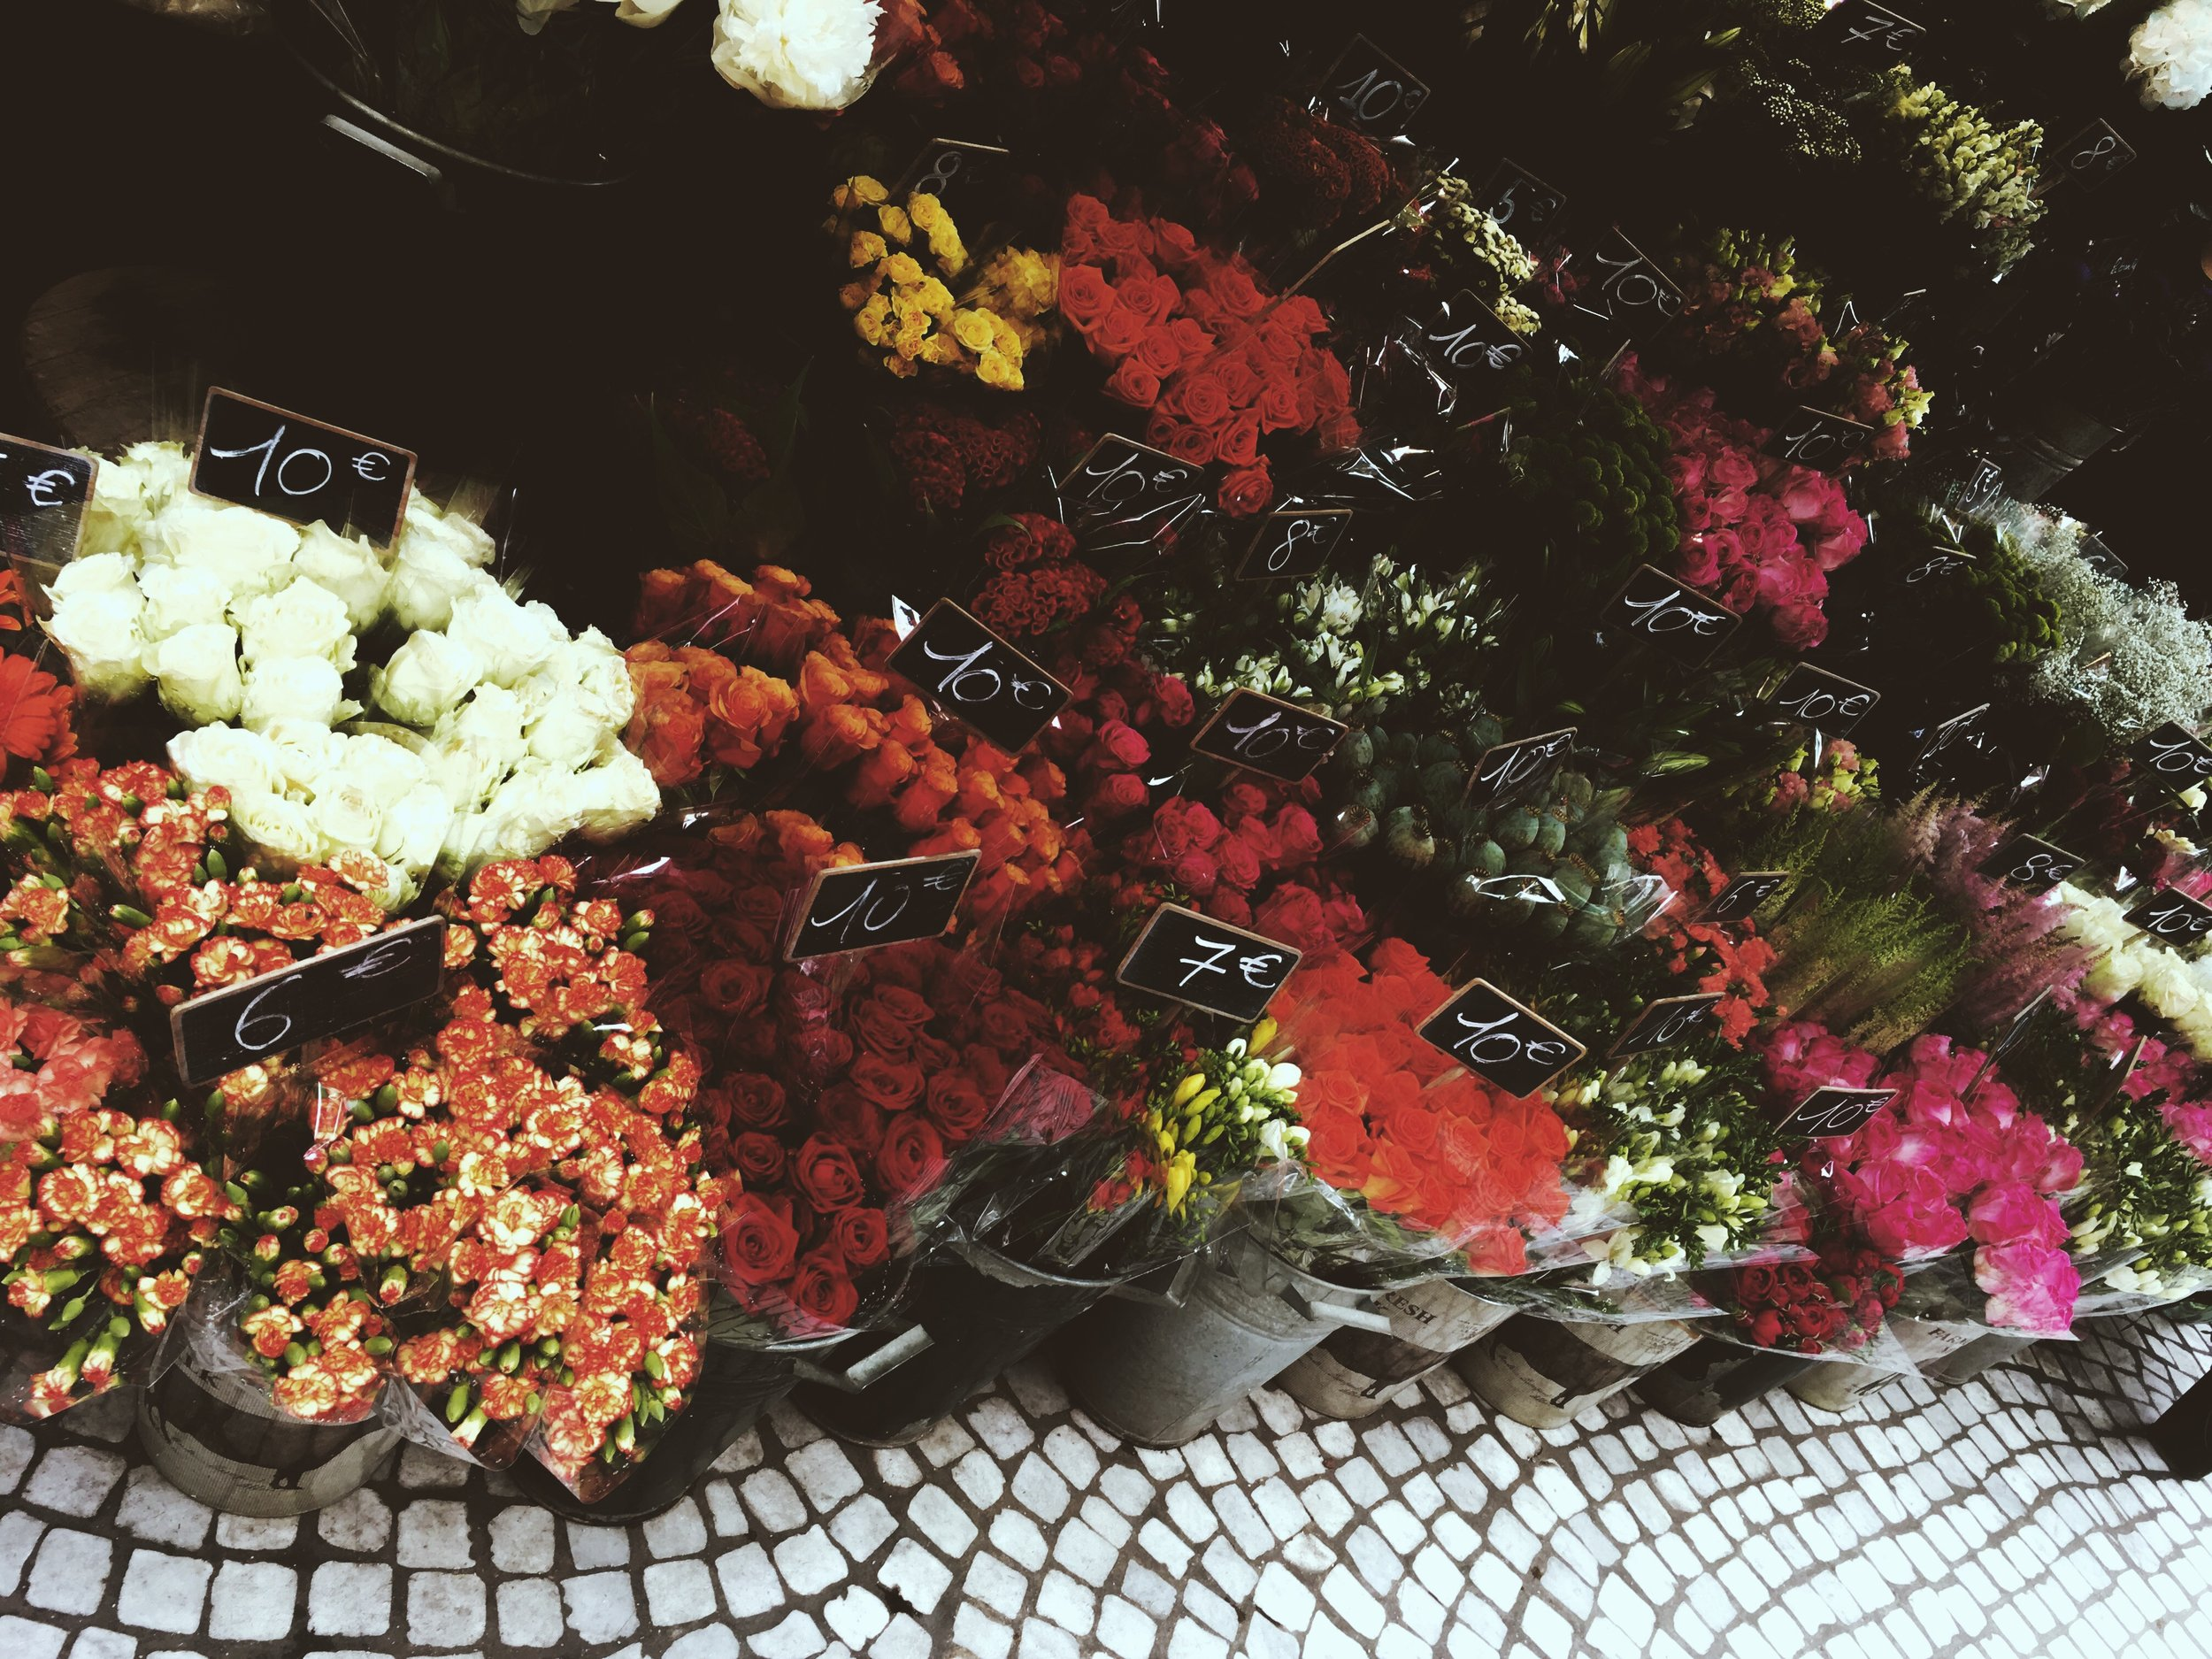 somewhere there was a flower market